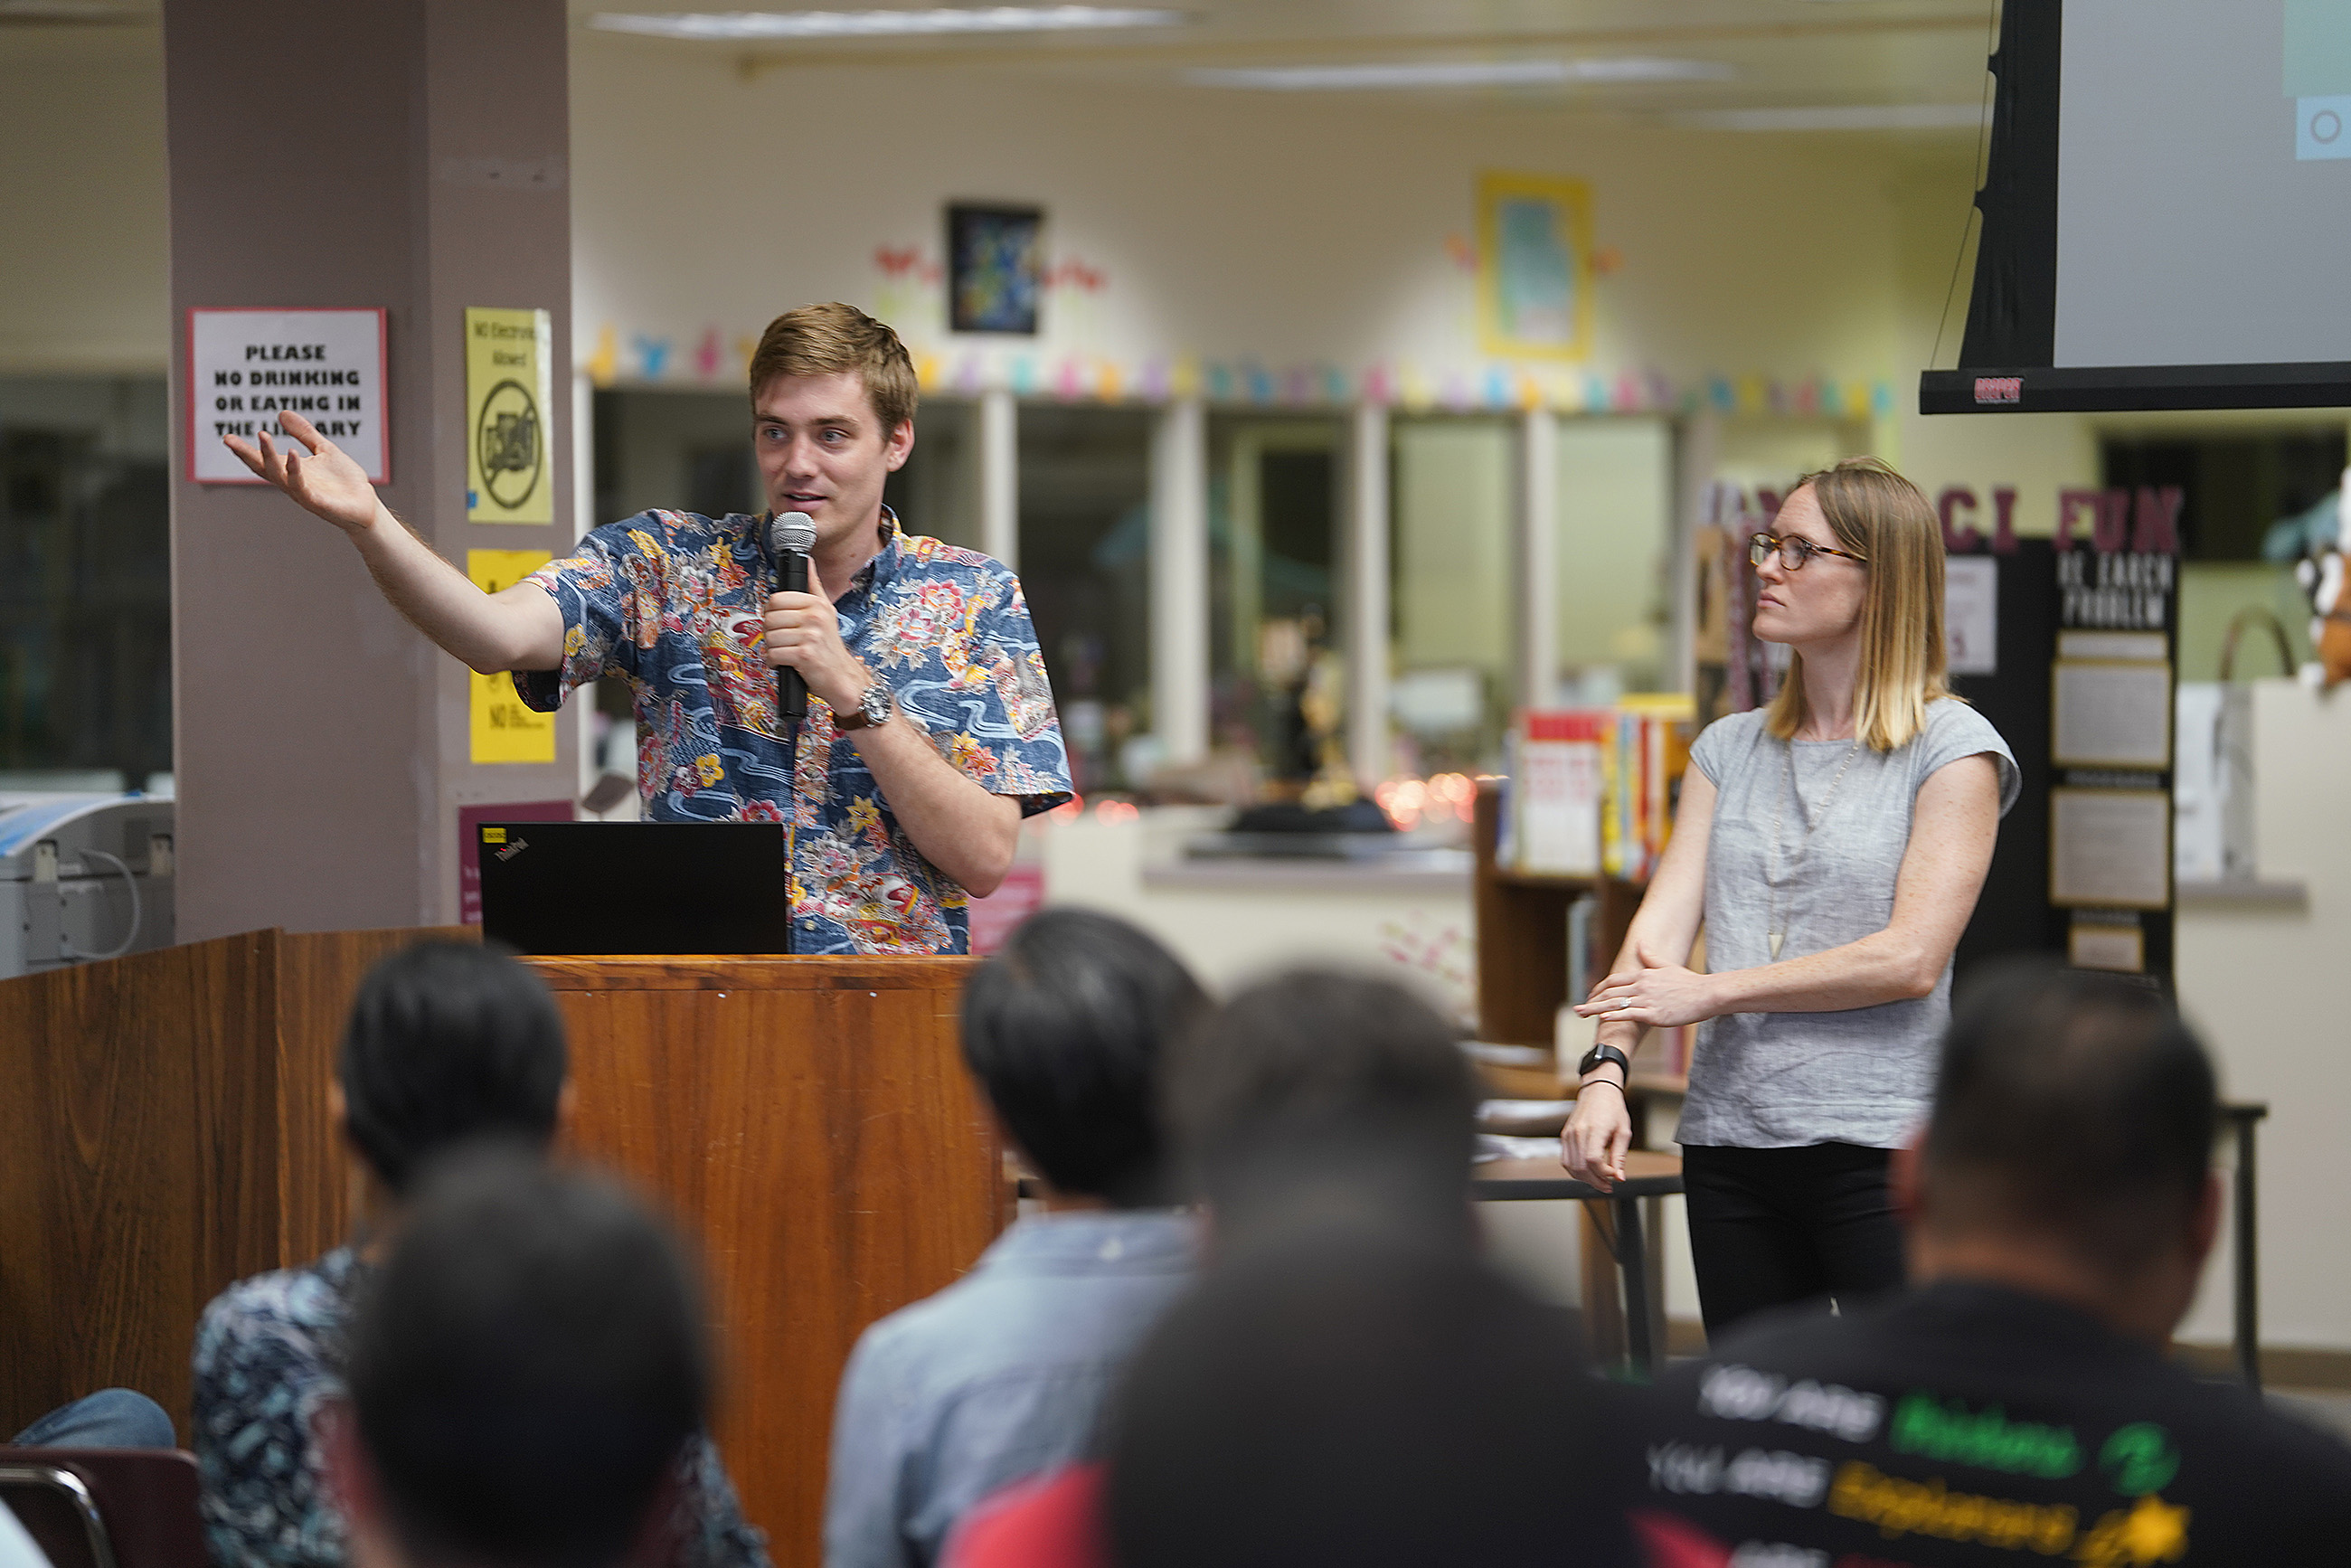 Ian Magruder from Landed shares how it works to Hawaii teachers gathered at Farrington High School library.